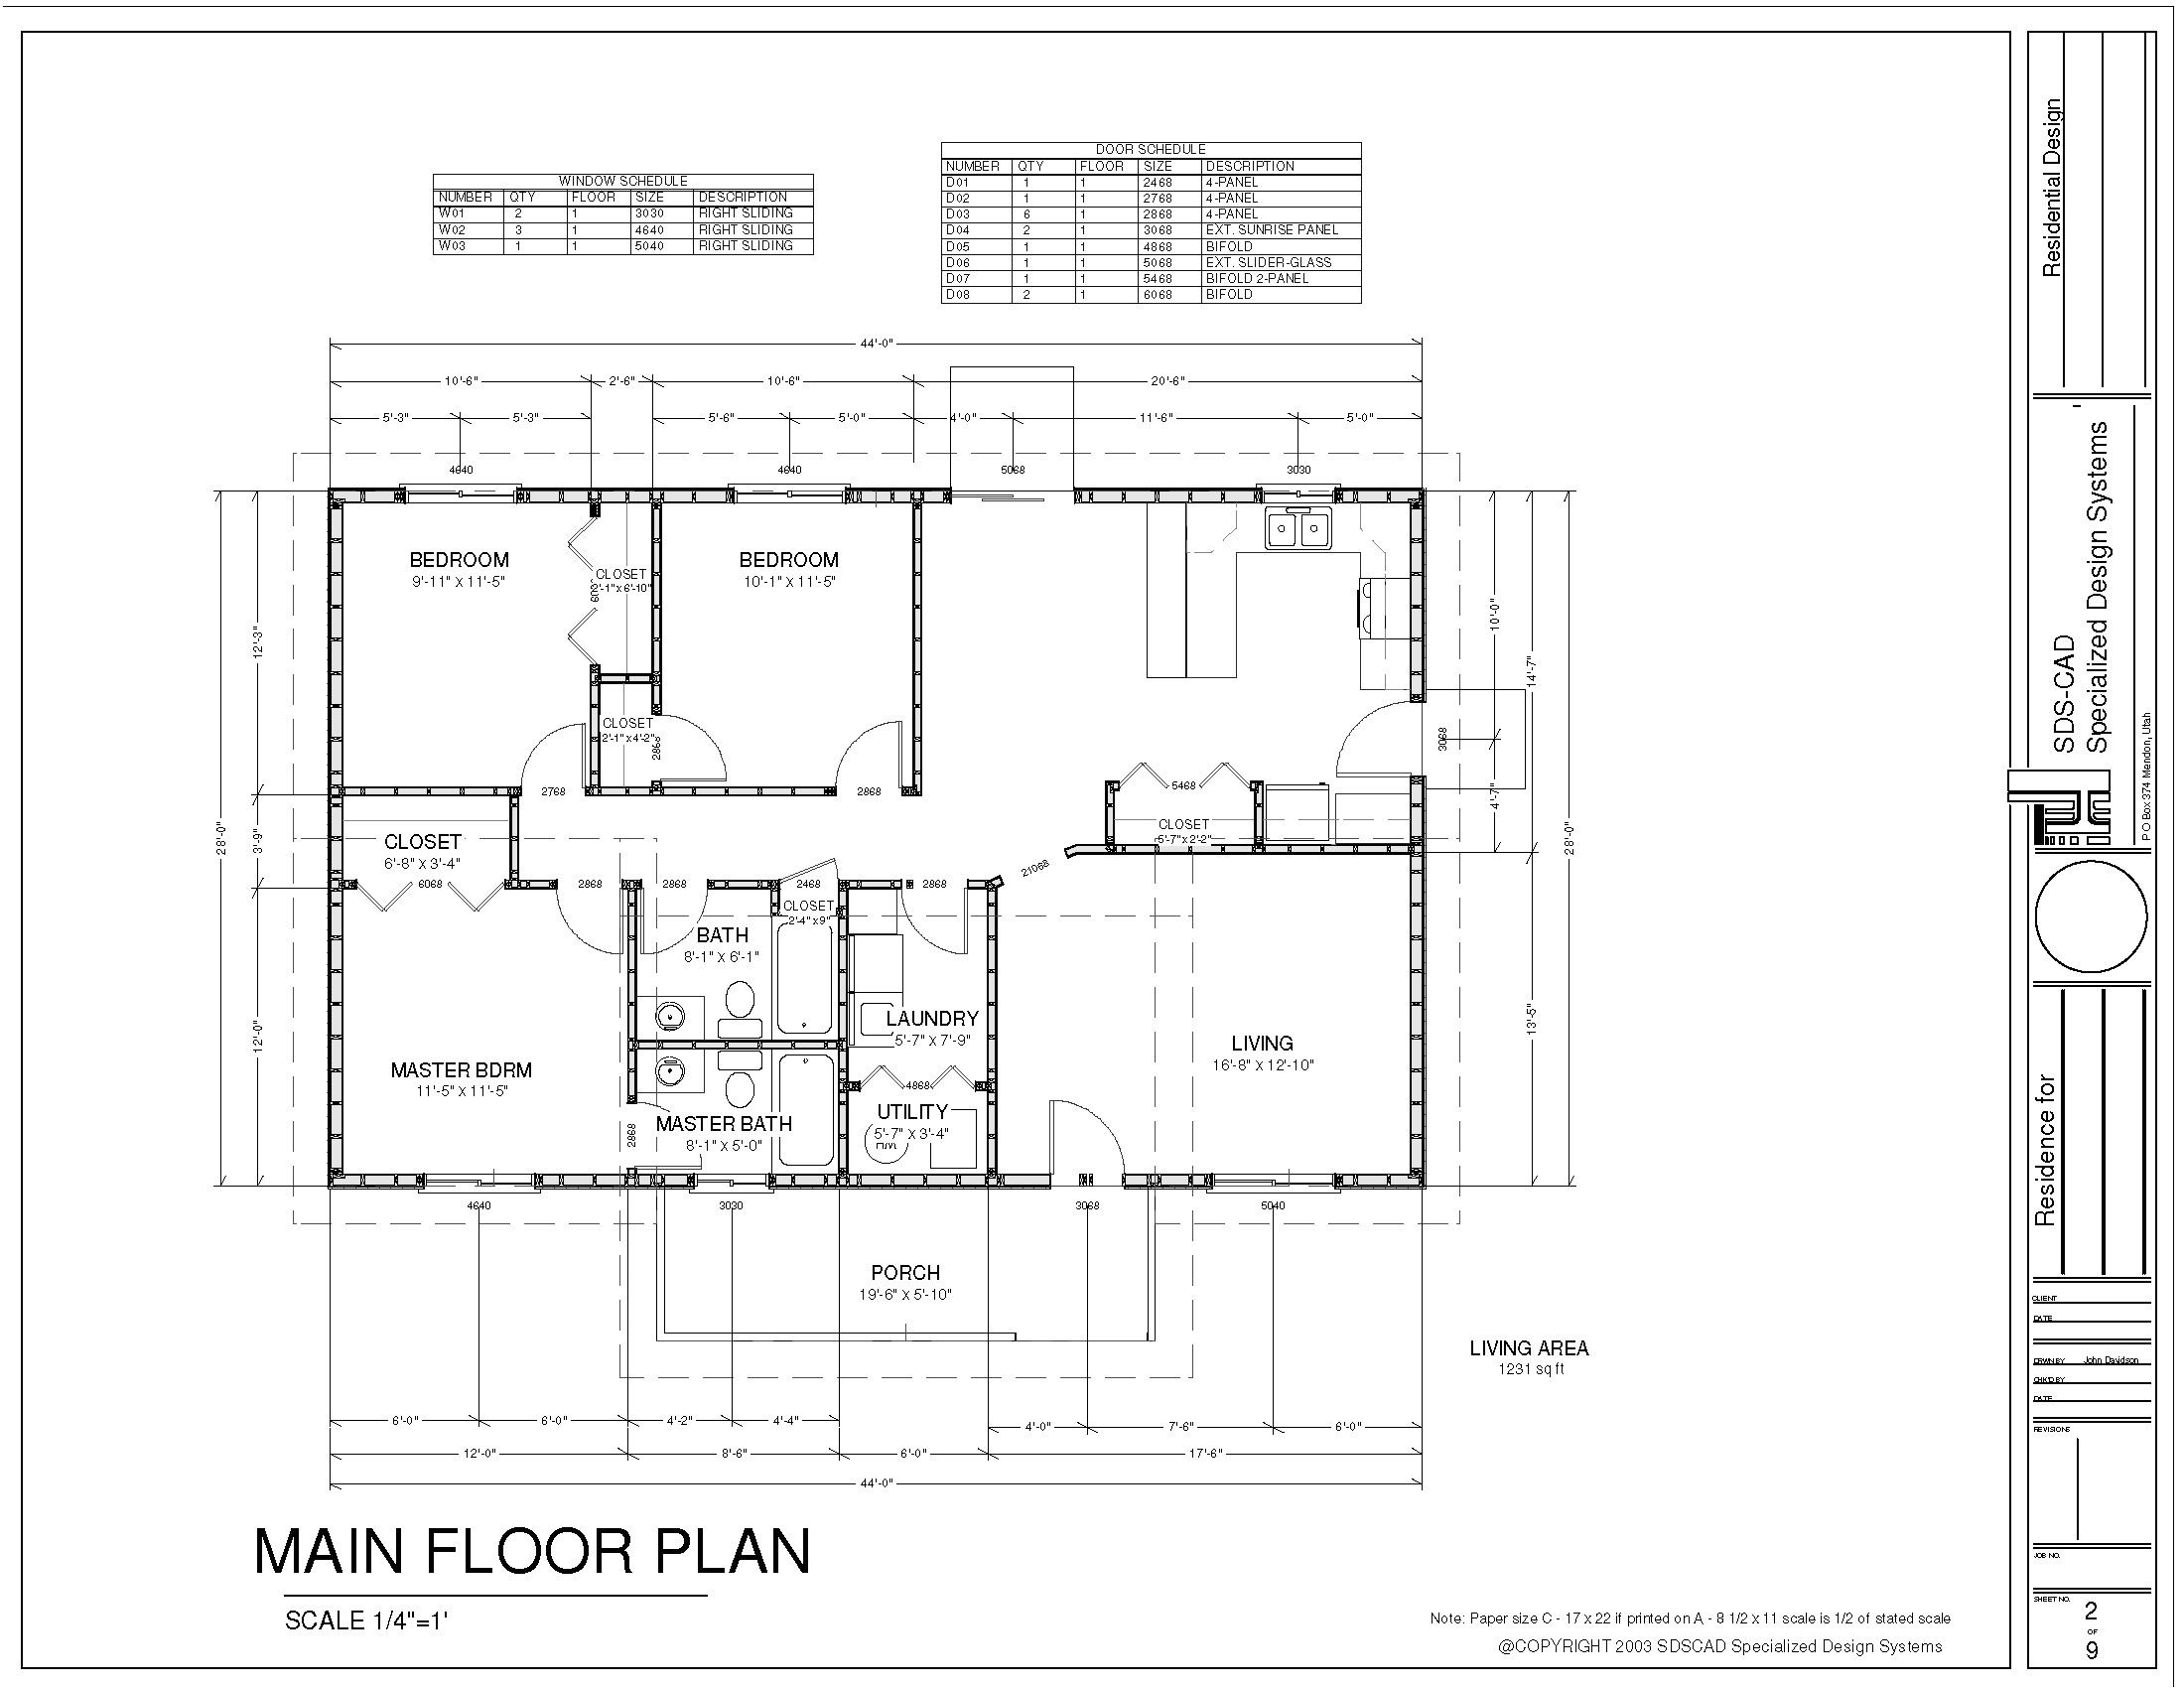 Home Plans Pdf 20 Beautiful Plan for House Construction Home Plans